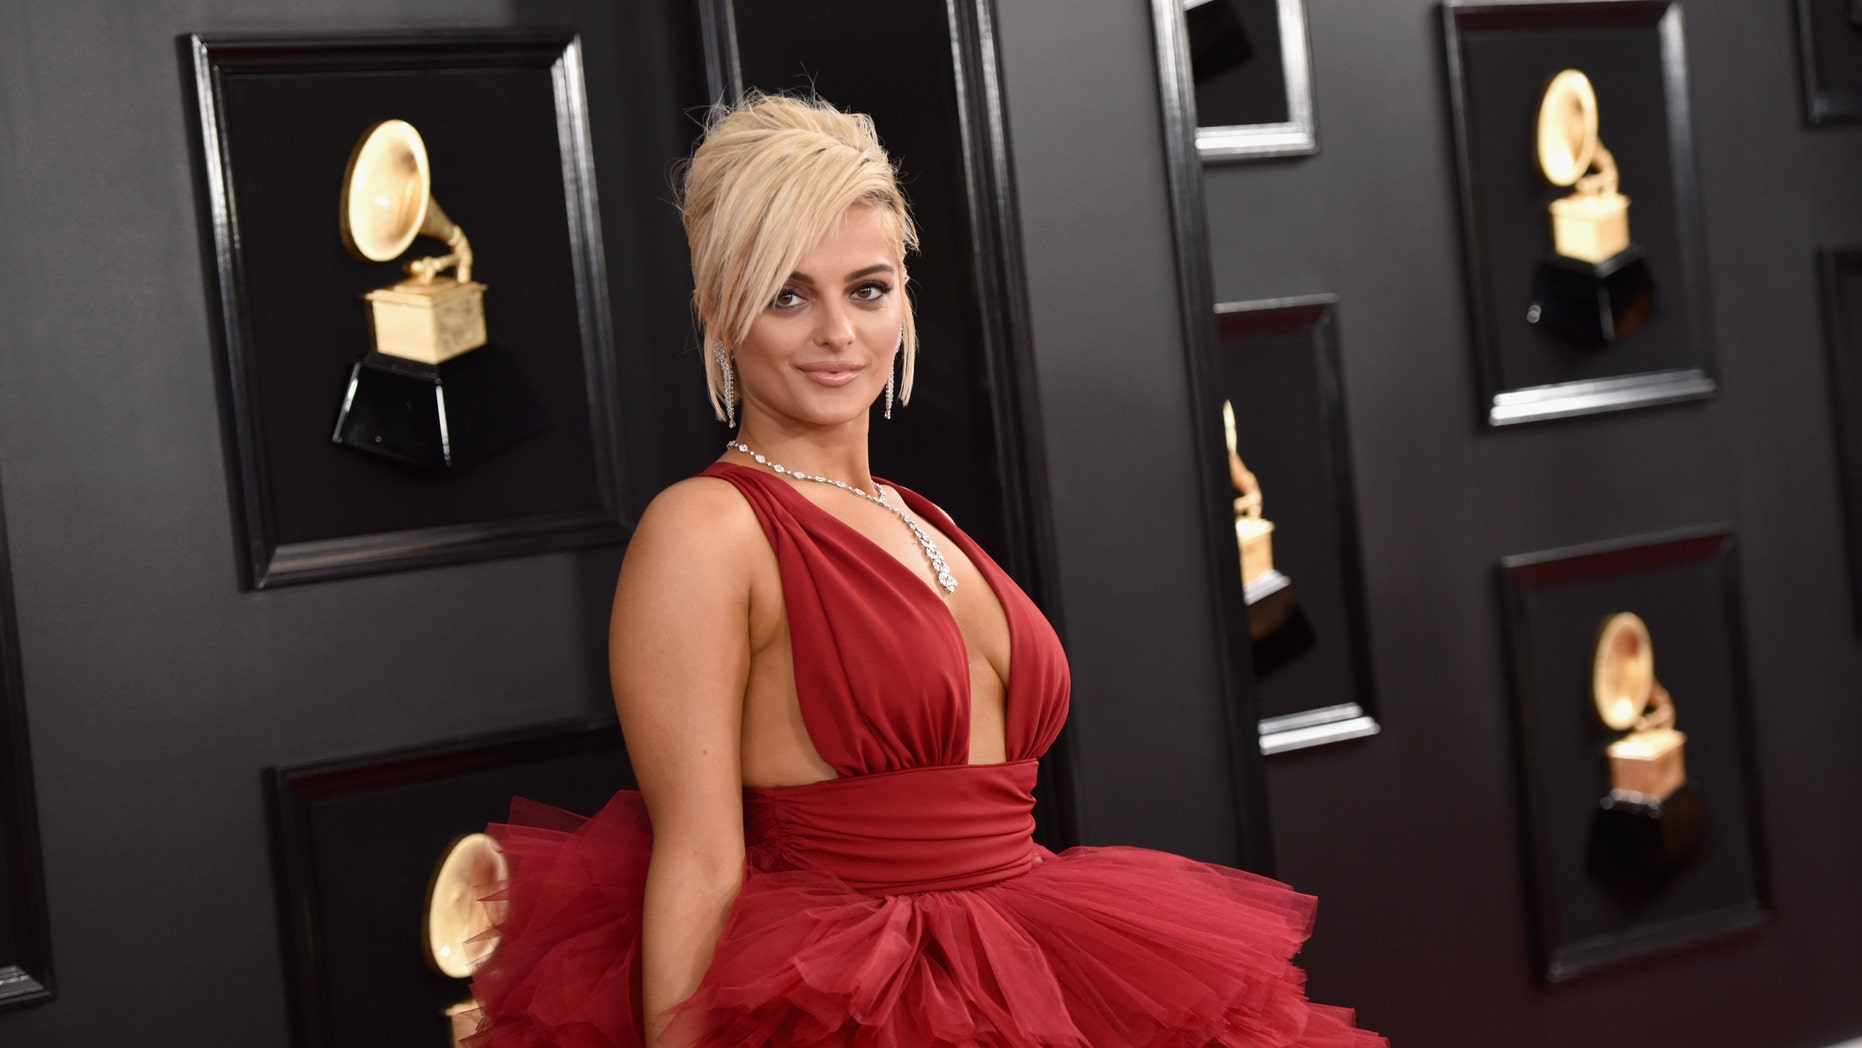 Bebe Rexha attends the 61st Annual GRAMMY Awards at Staples Center